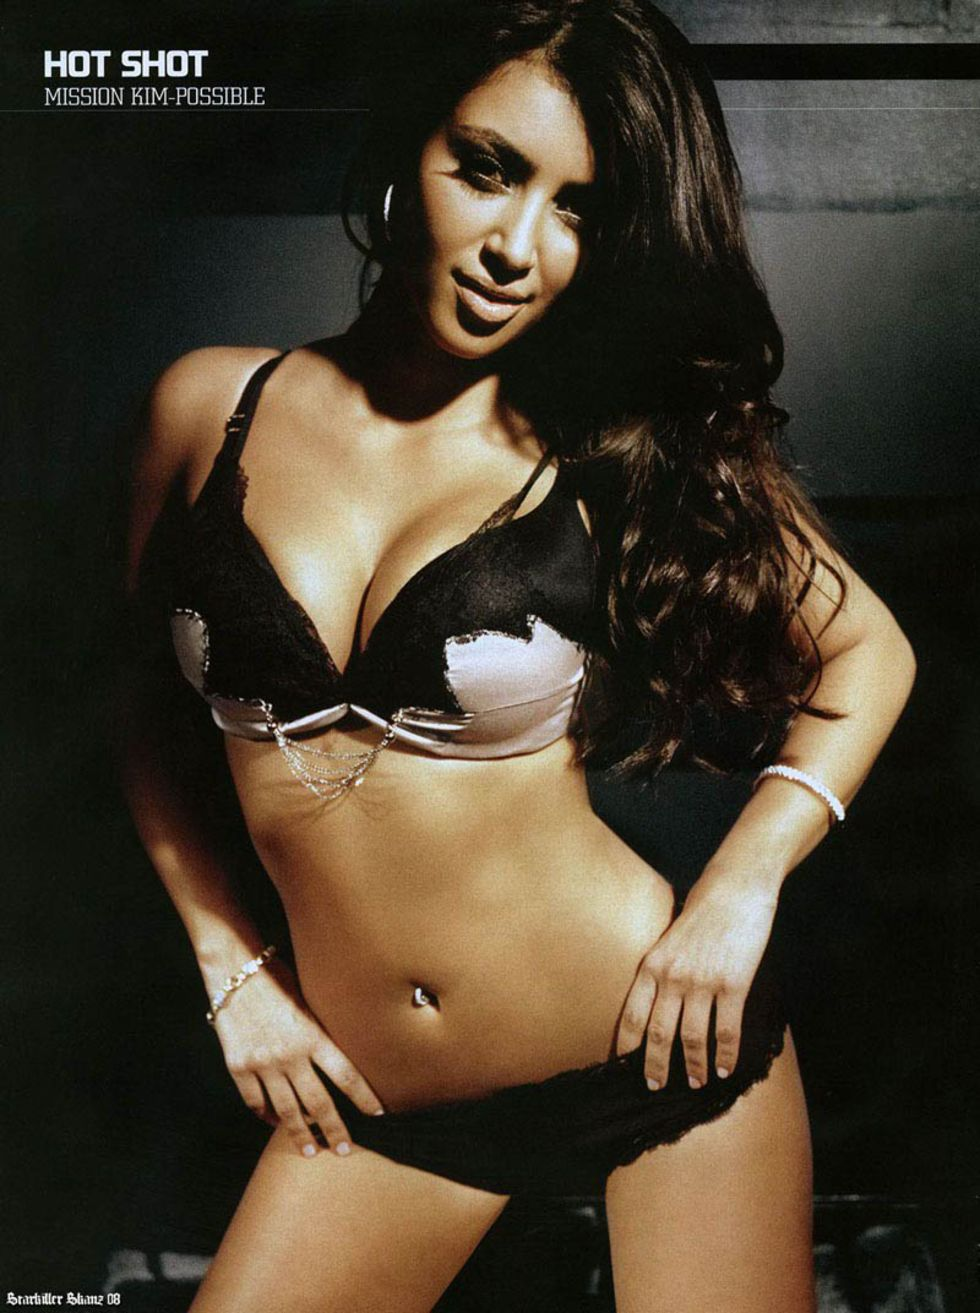 kim-kardashian-ralph-magazine-may-2008-01